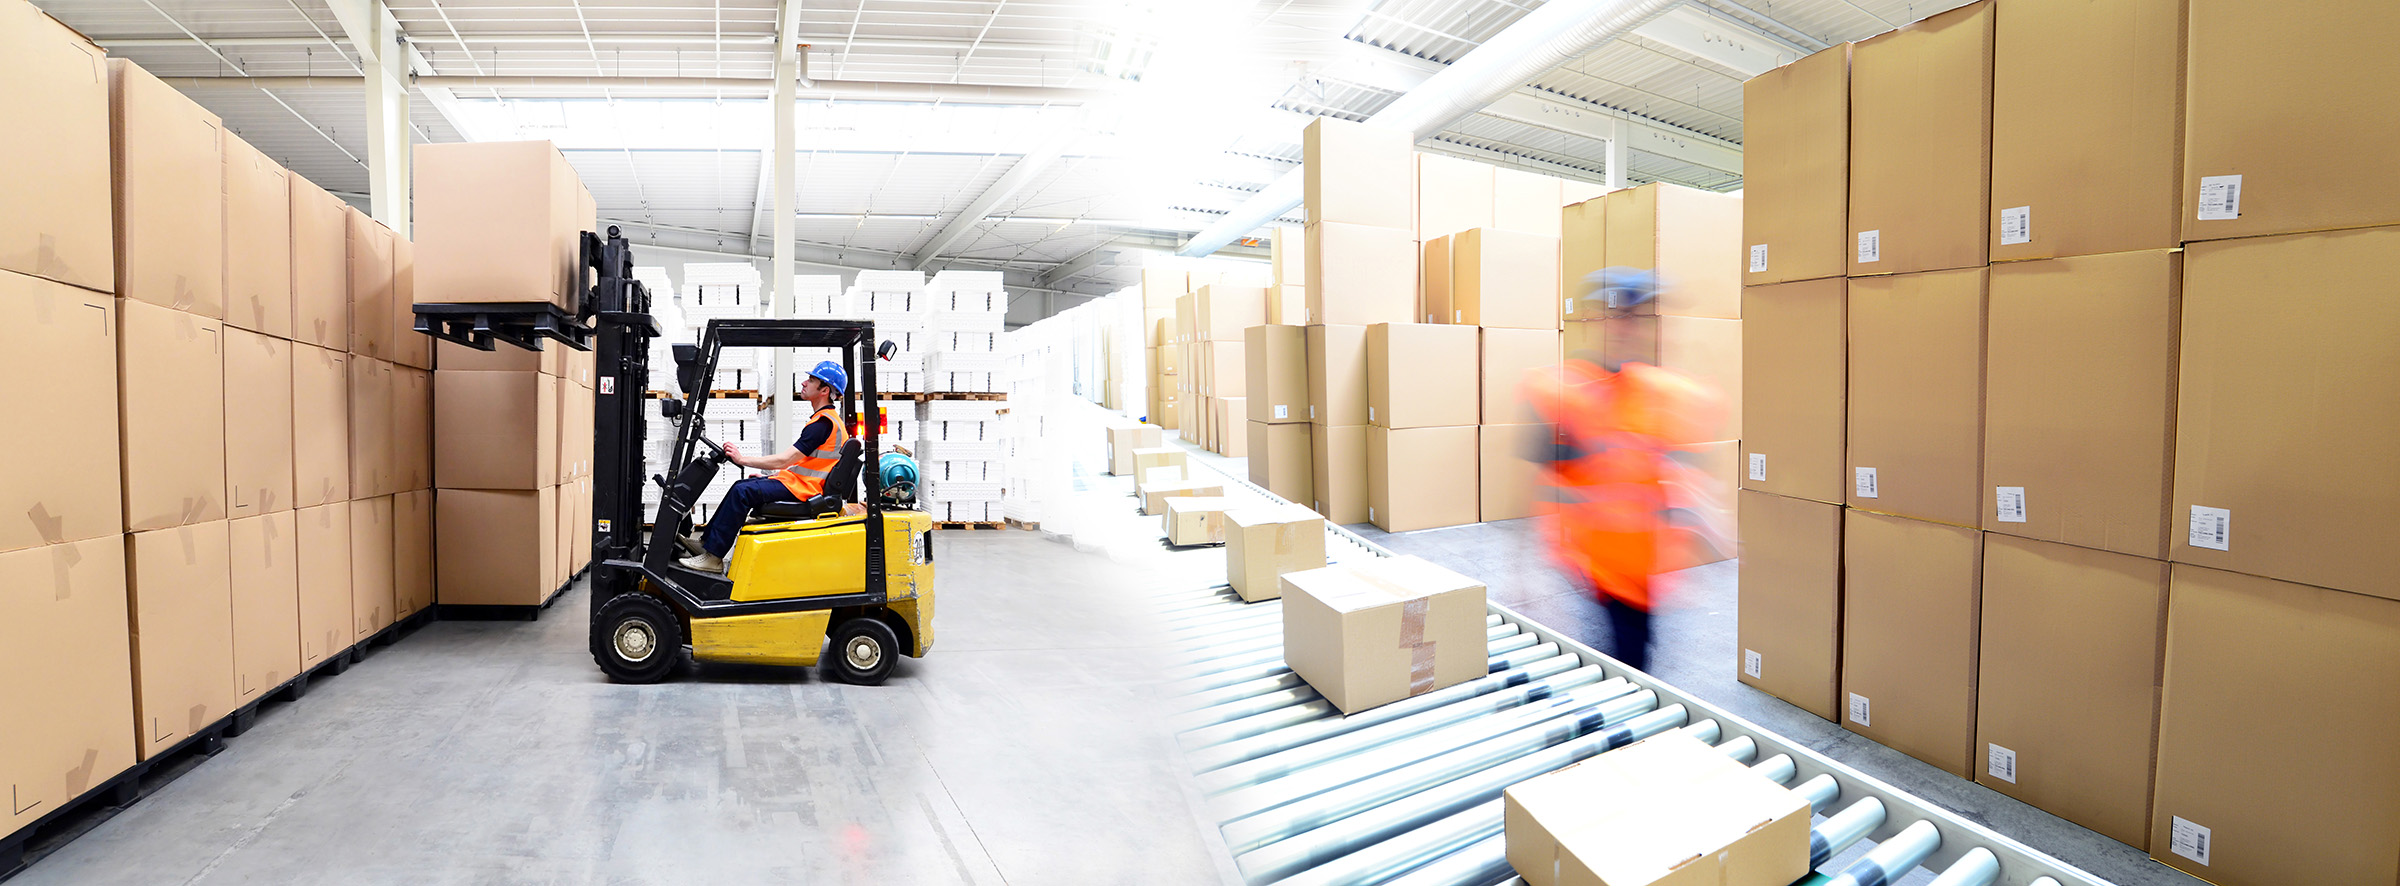 'Forklift in warehouse'